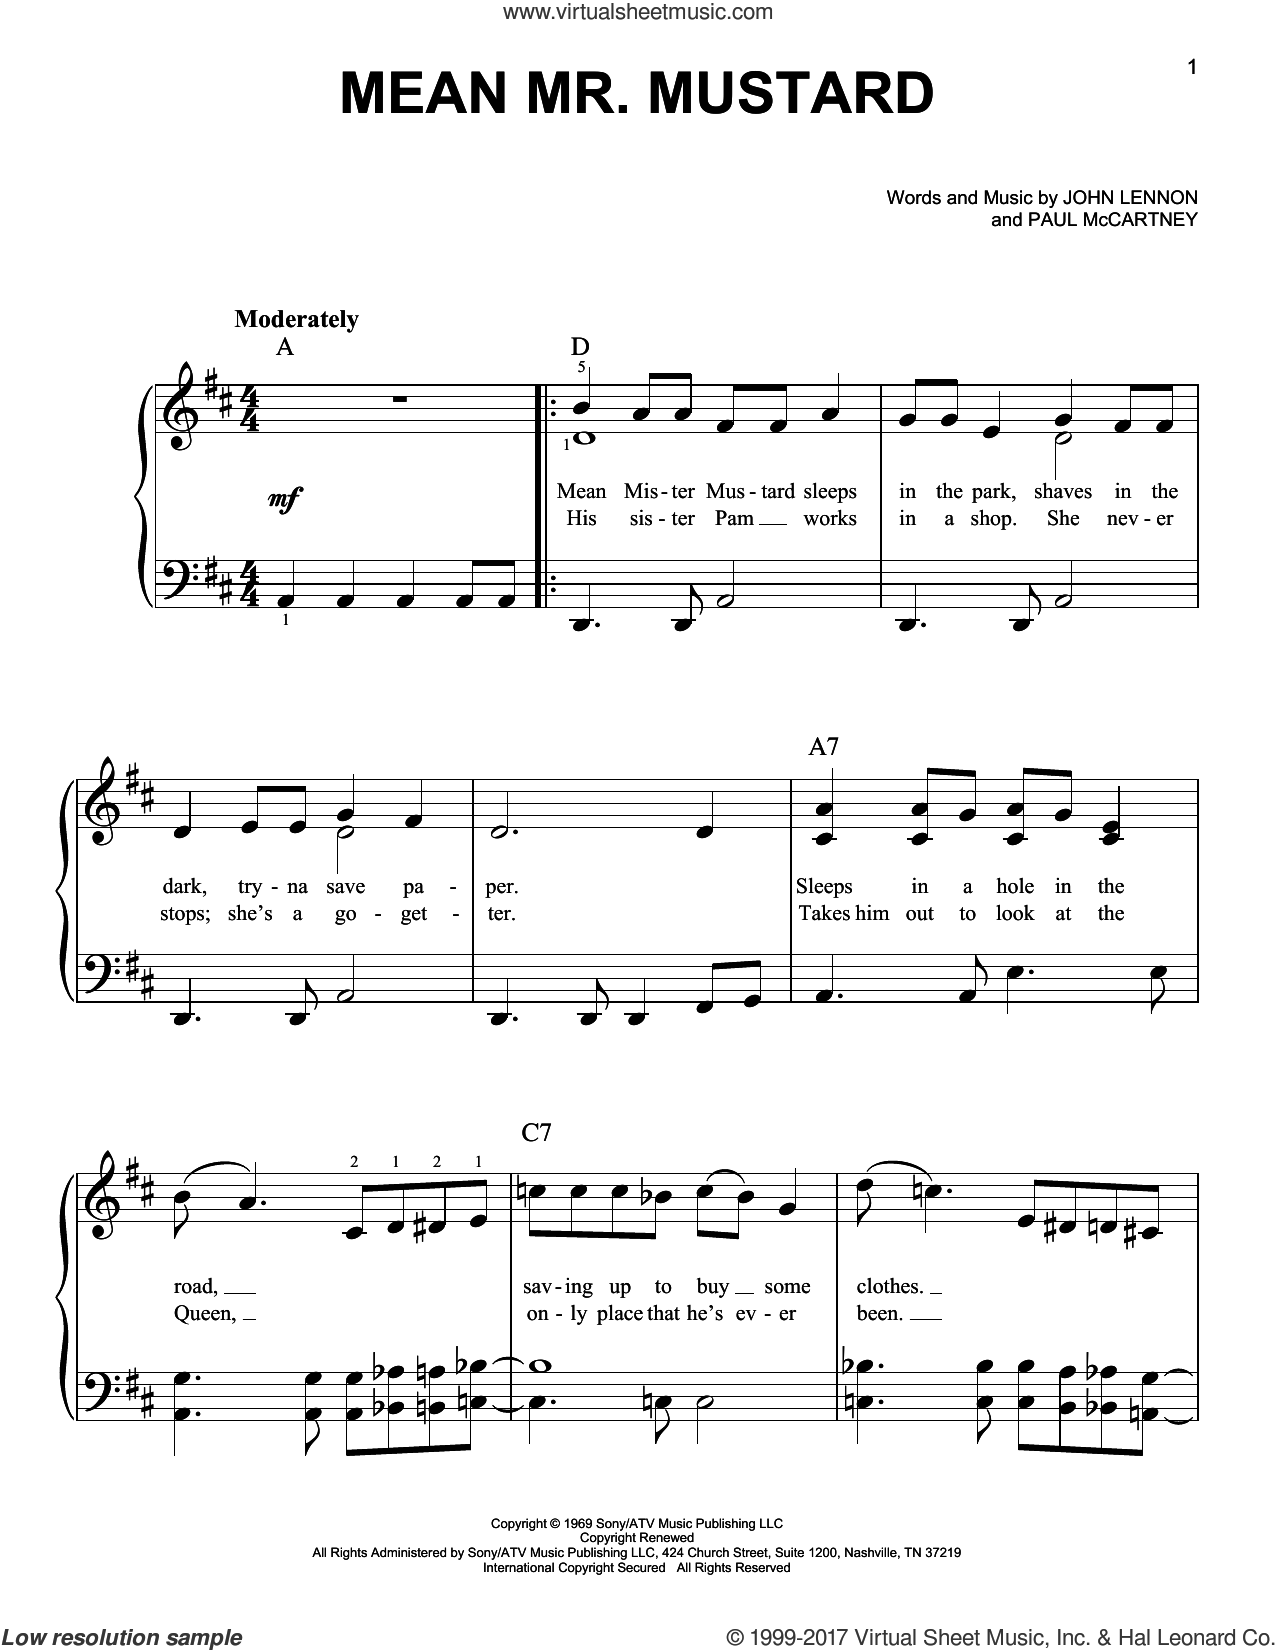 Mean Mr. Mustard sheet music for piano solo by The Beatles, John Lennon and Paul McCartney, easy skill level